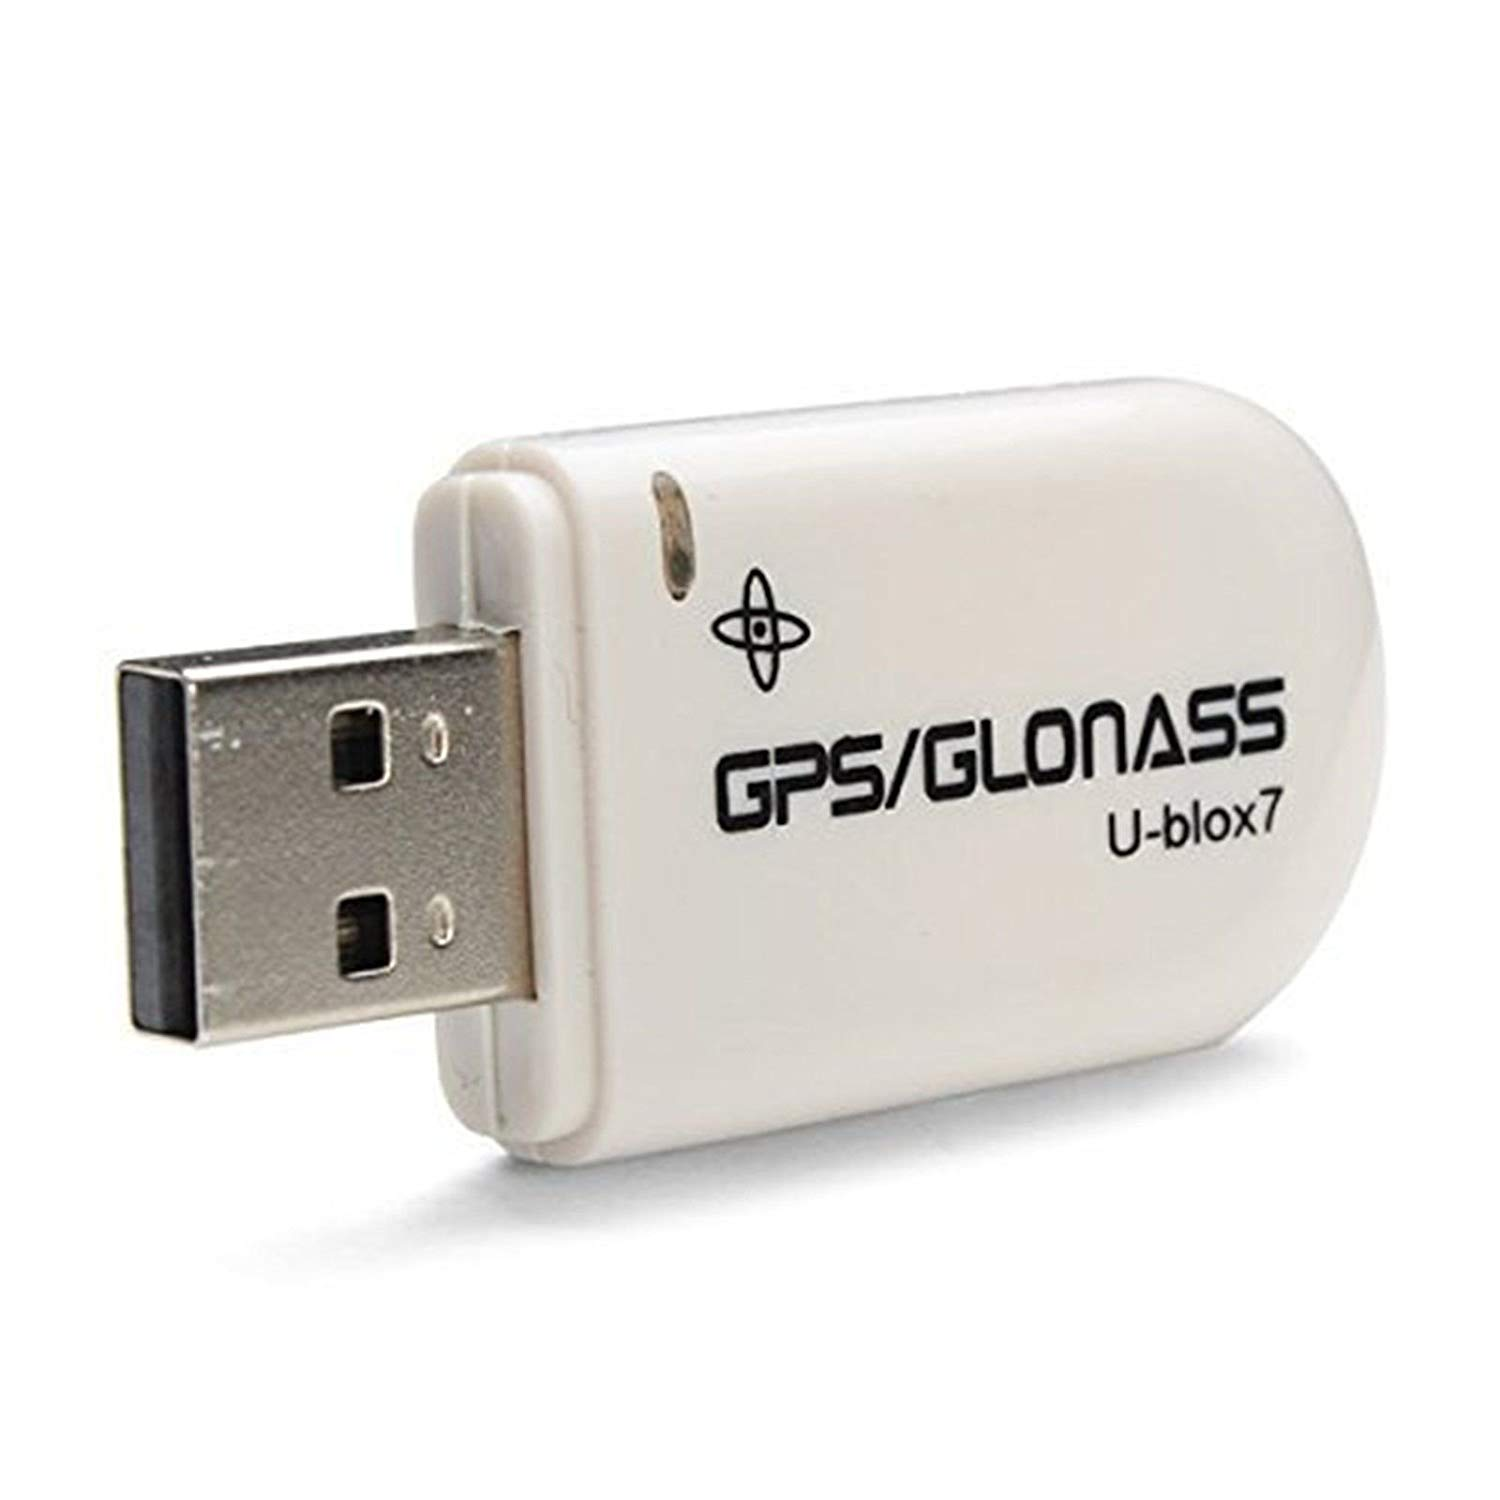 VK172 G-MOUSE USB GPS/GLONASS USB GPS Receiver for Windows 10/8/7/VISTA/XP